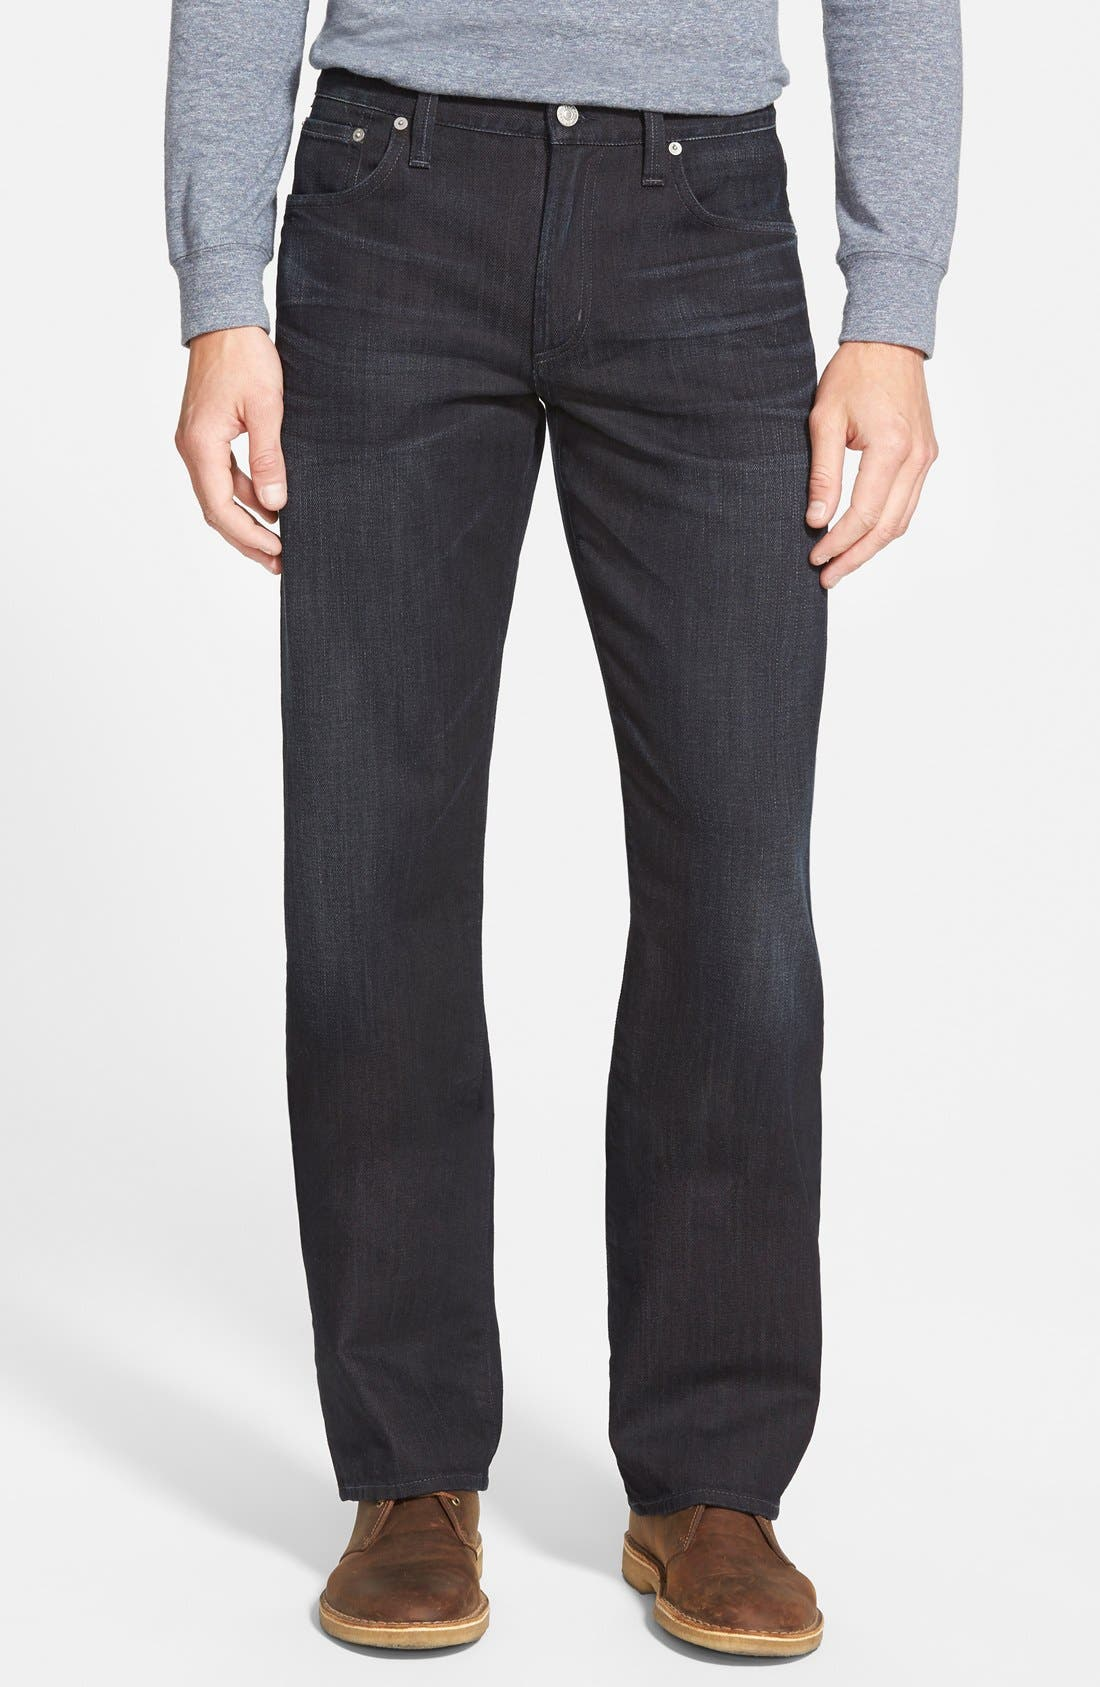 'Evans' Relaxed Fit Jeans,                         Main,                         color, Macon